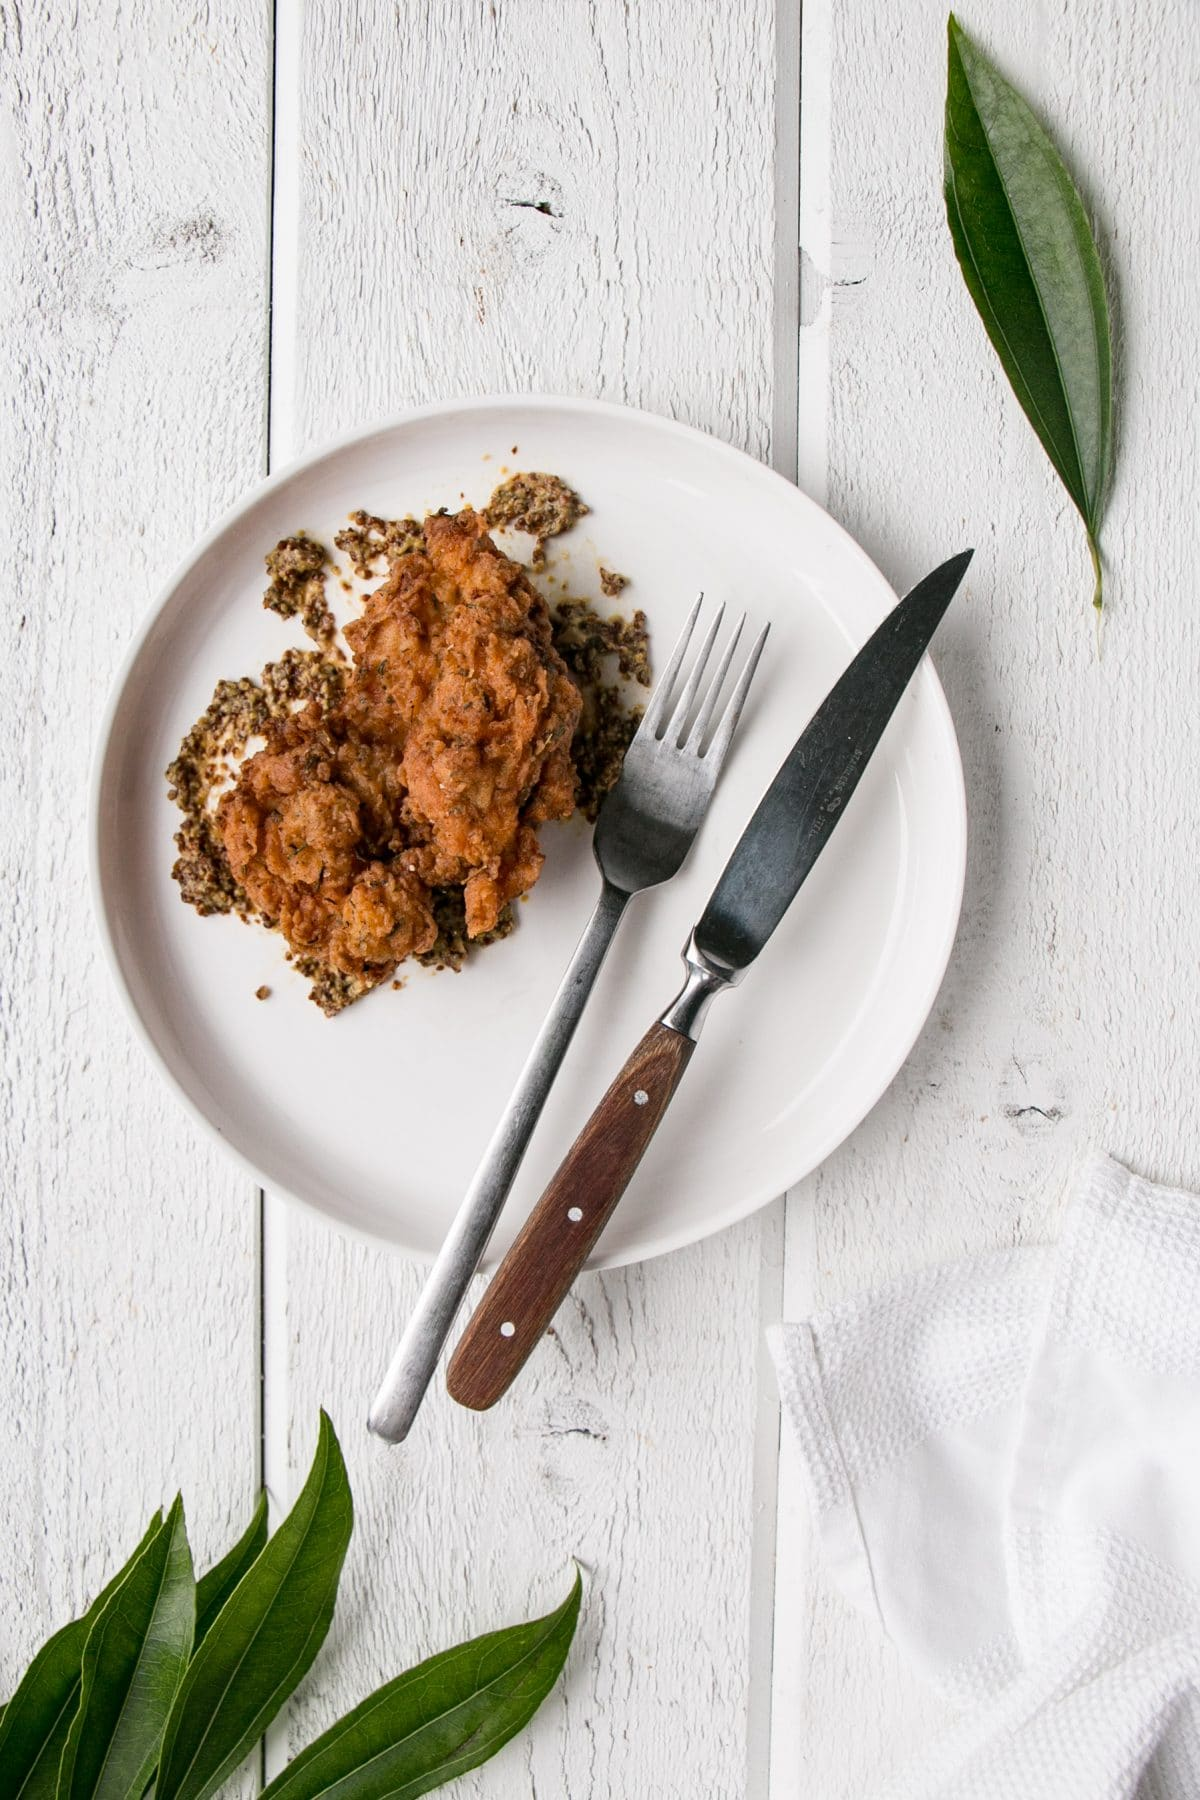 Homemade, juicy, and perfectly seasoned Fried Chicken. #chicken #friedchicken #homecooking